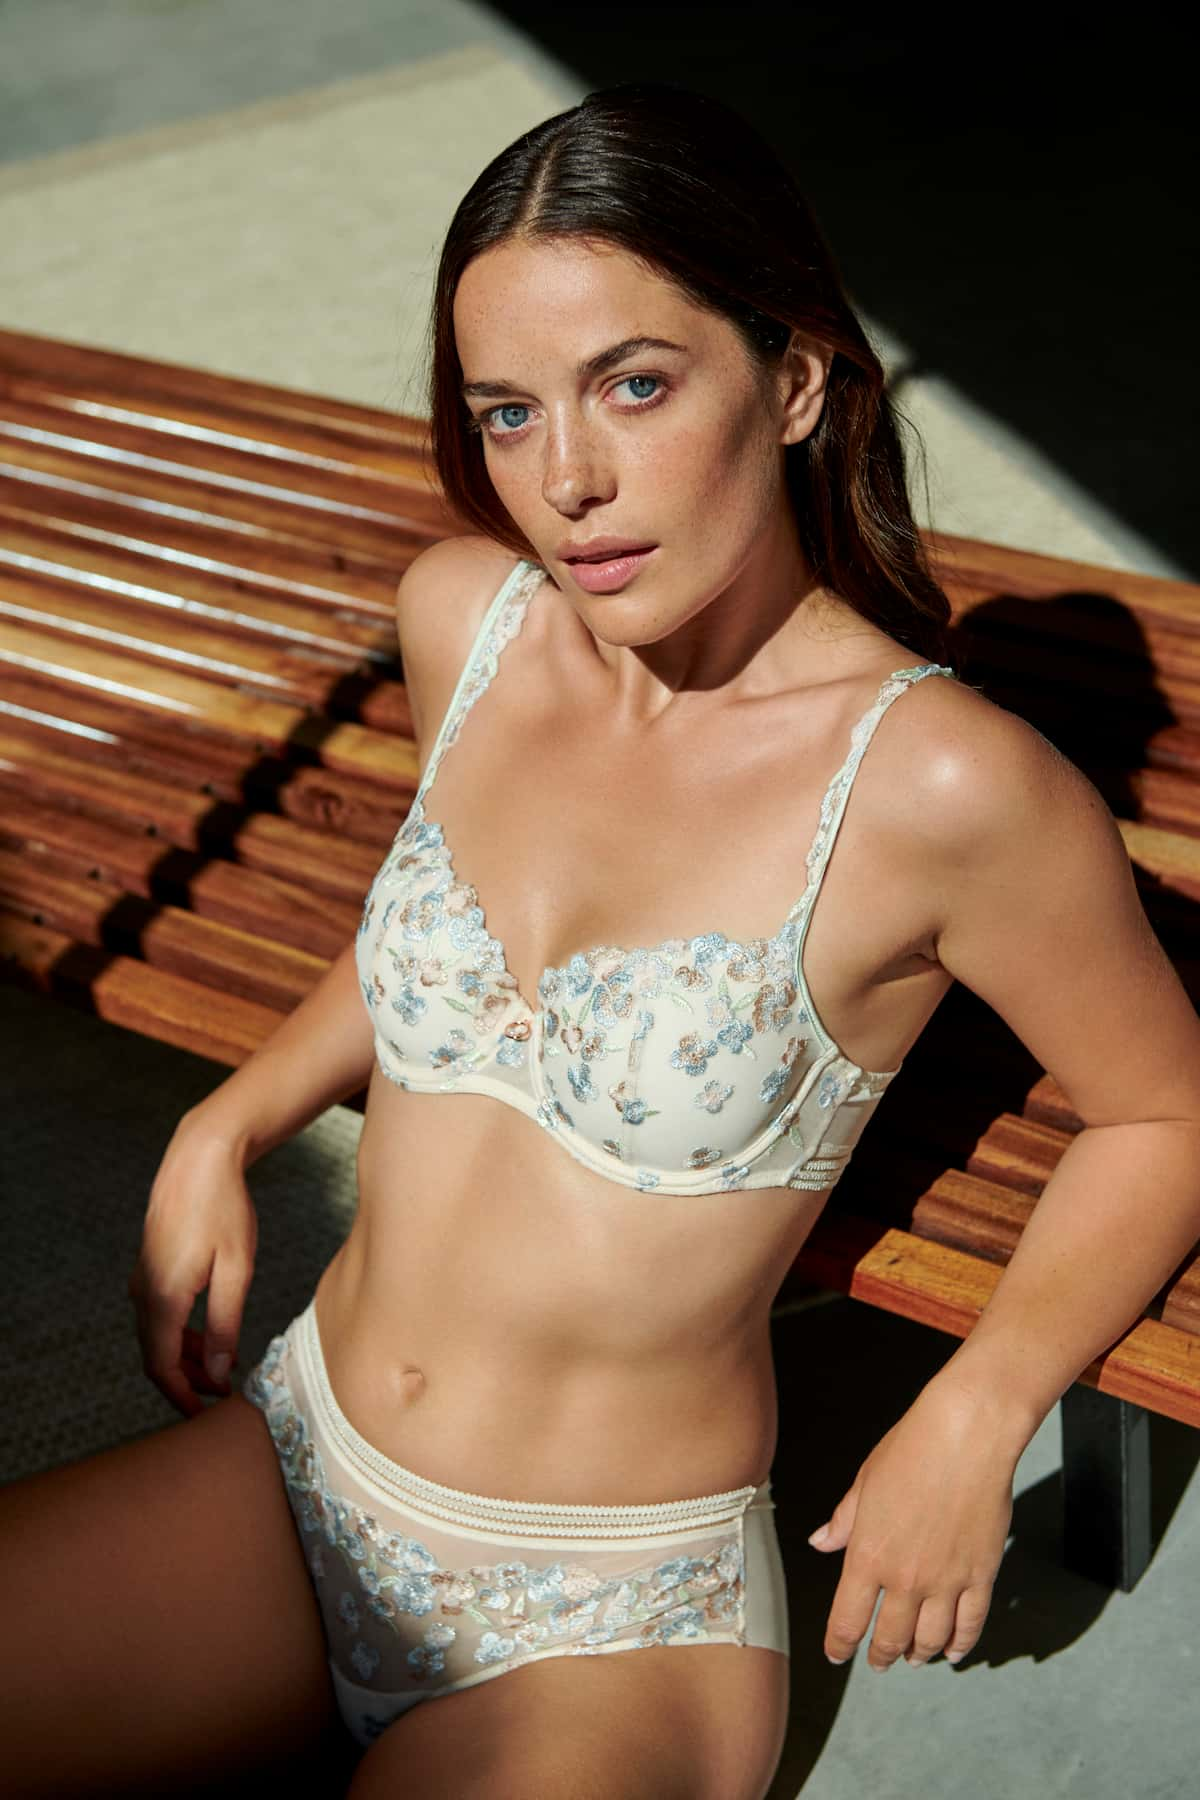 Lingerie 2021 BH und Slip Marie Jo Modell Nathy, Farbe Pearled Ivory